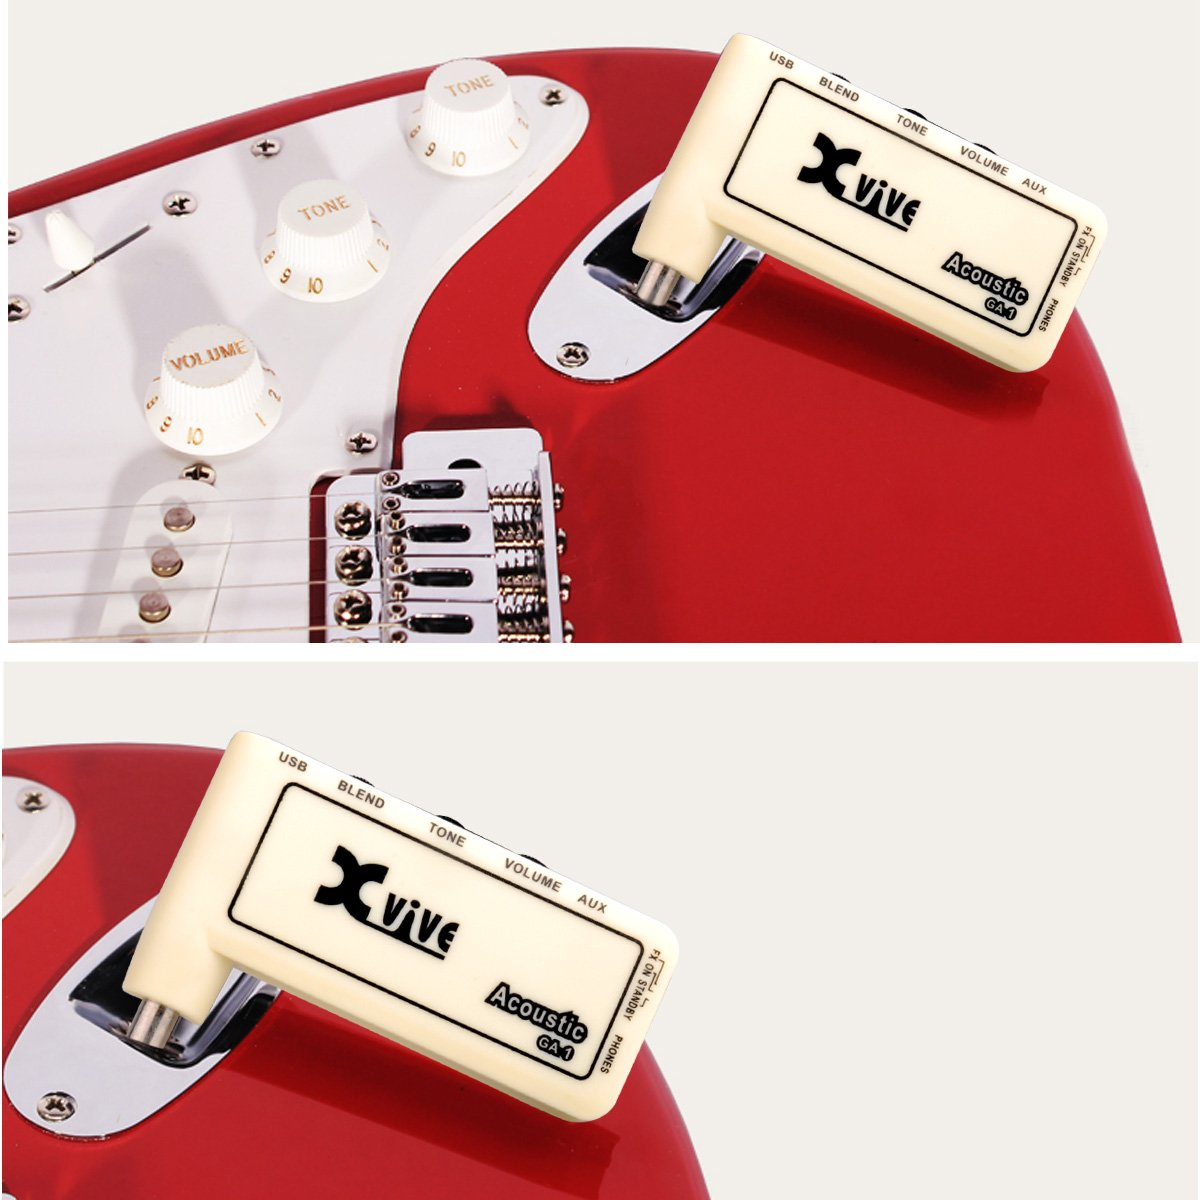 Mini Headphone Amp Acoustic Amplug Usb Charge Accept 1 4 Modify Into The Electric Guitar On Fm Wireless Transmitter Cable Plastic Creamy White By Lc Prime Musical Instruments